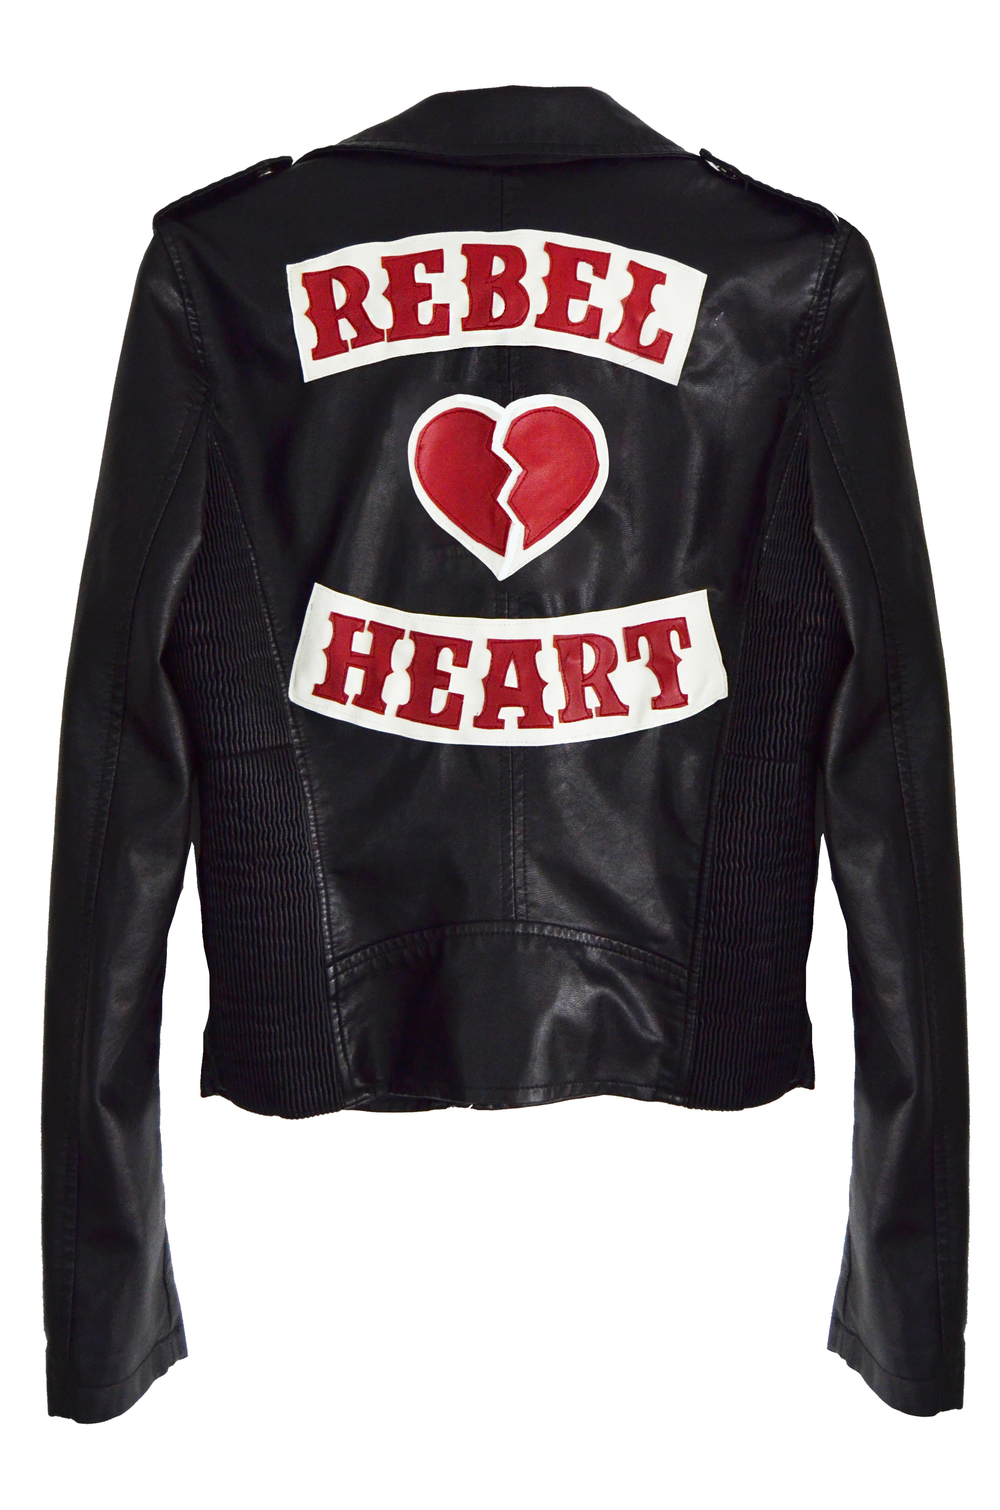 high heels suicide_rebel heart_leather jacket.jpg